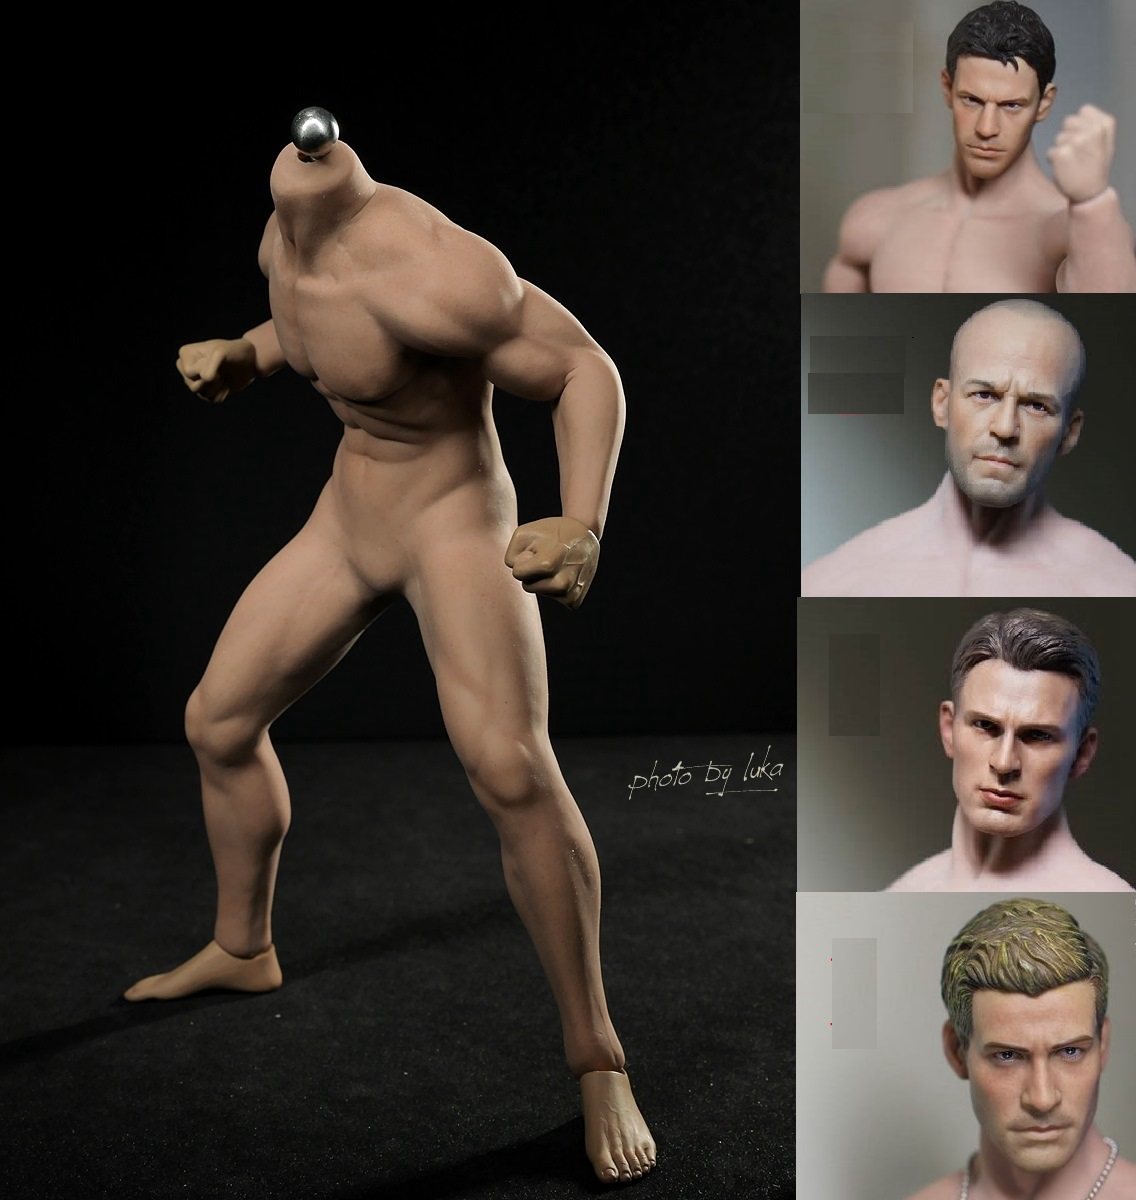 PHICEN PL2015 M30 1/6 Muscle Super Flexible Seamless Steel Male sketch Body for 12 HT DAM Collectible